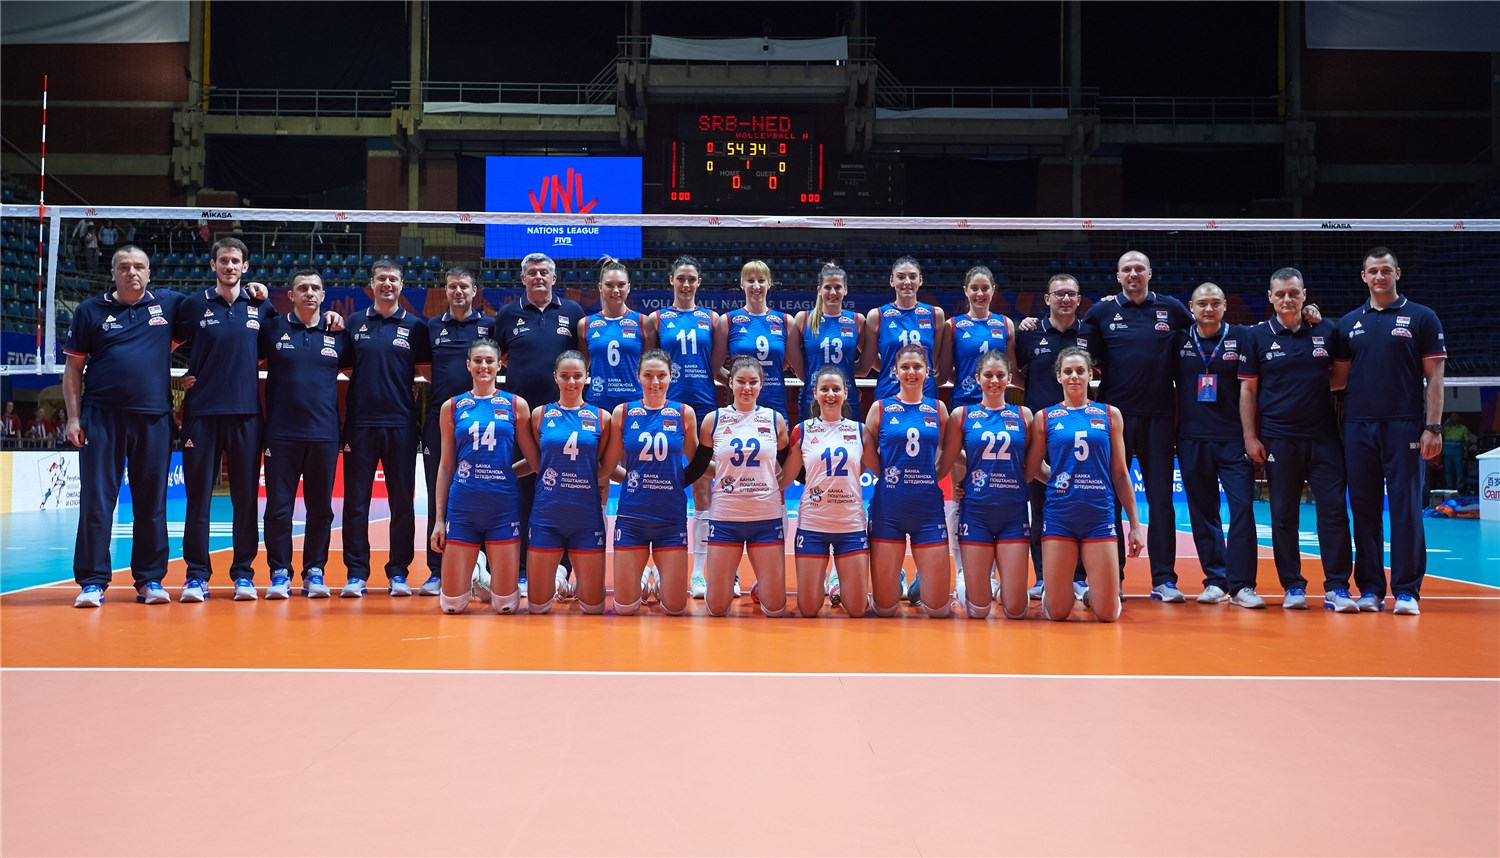 Overview - Serbia - FIVB Volleyball Nations League 2019